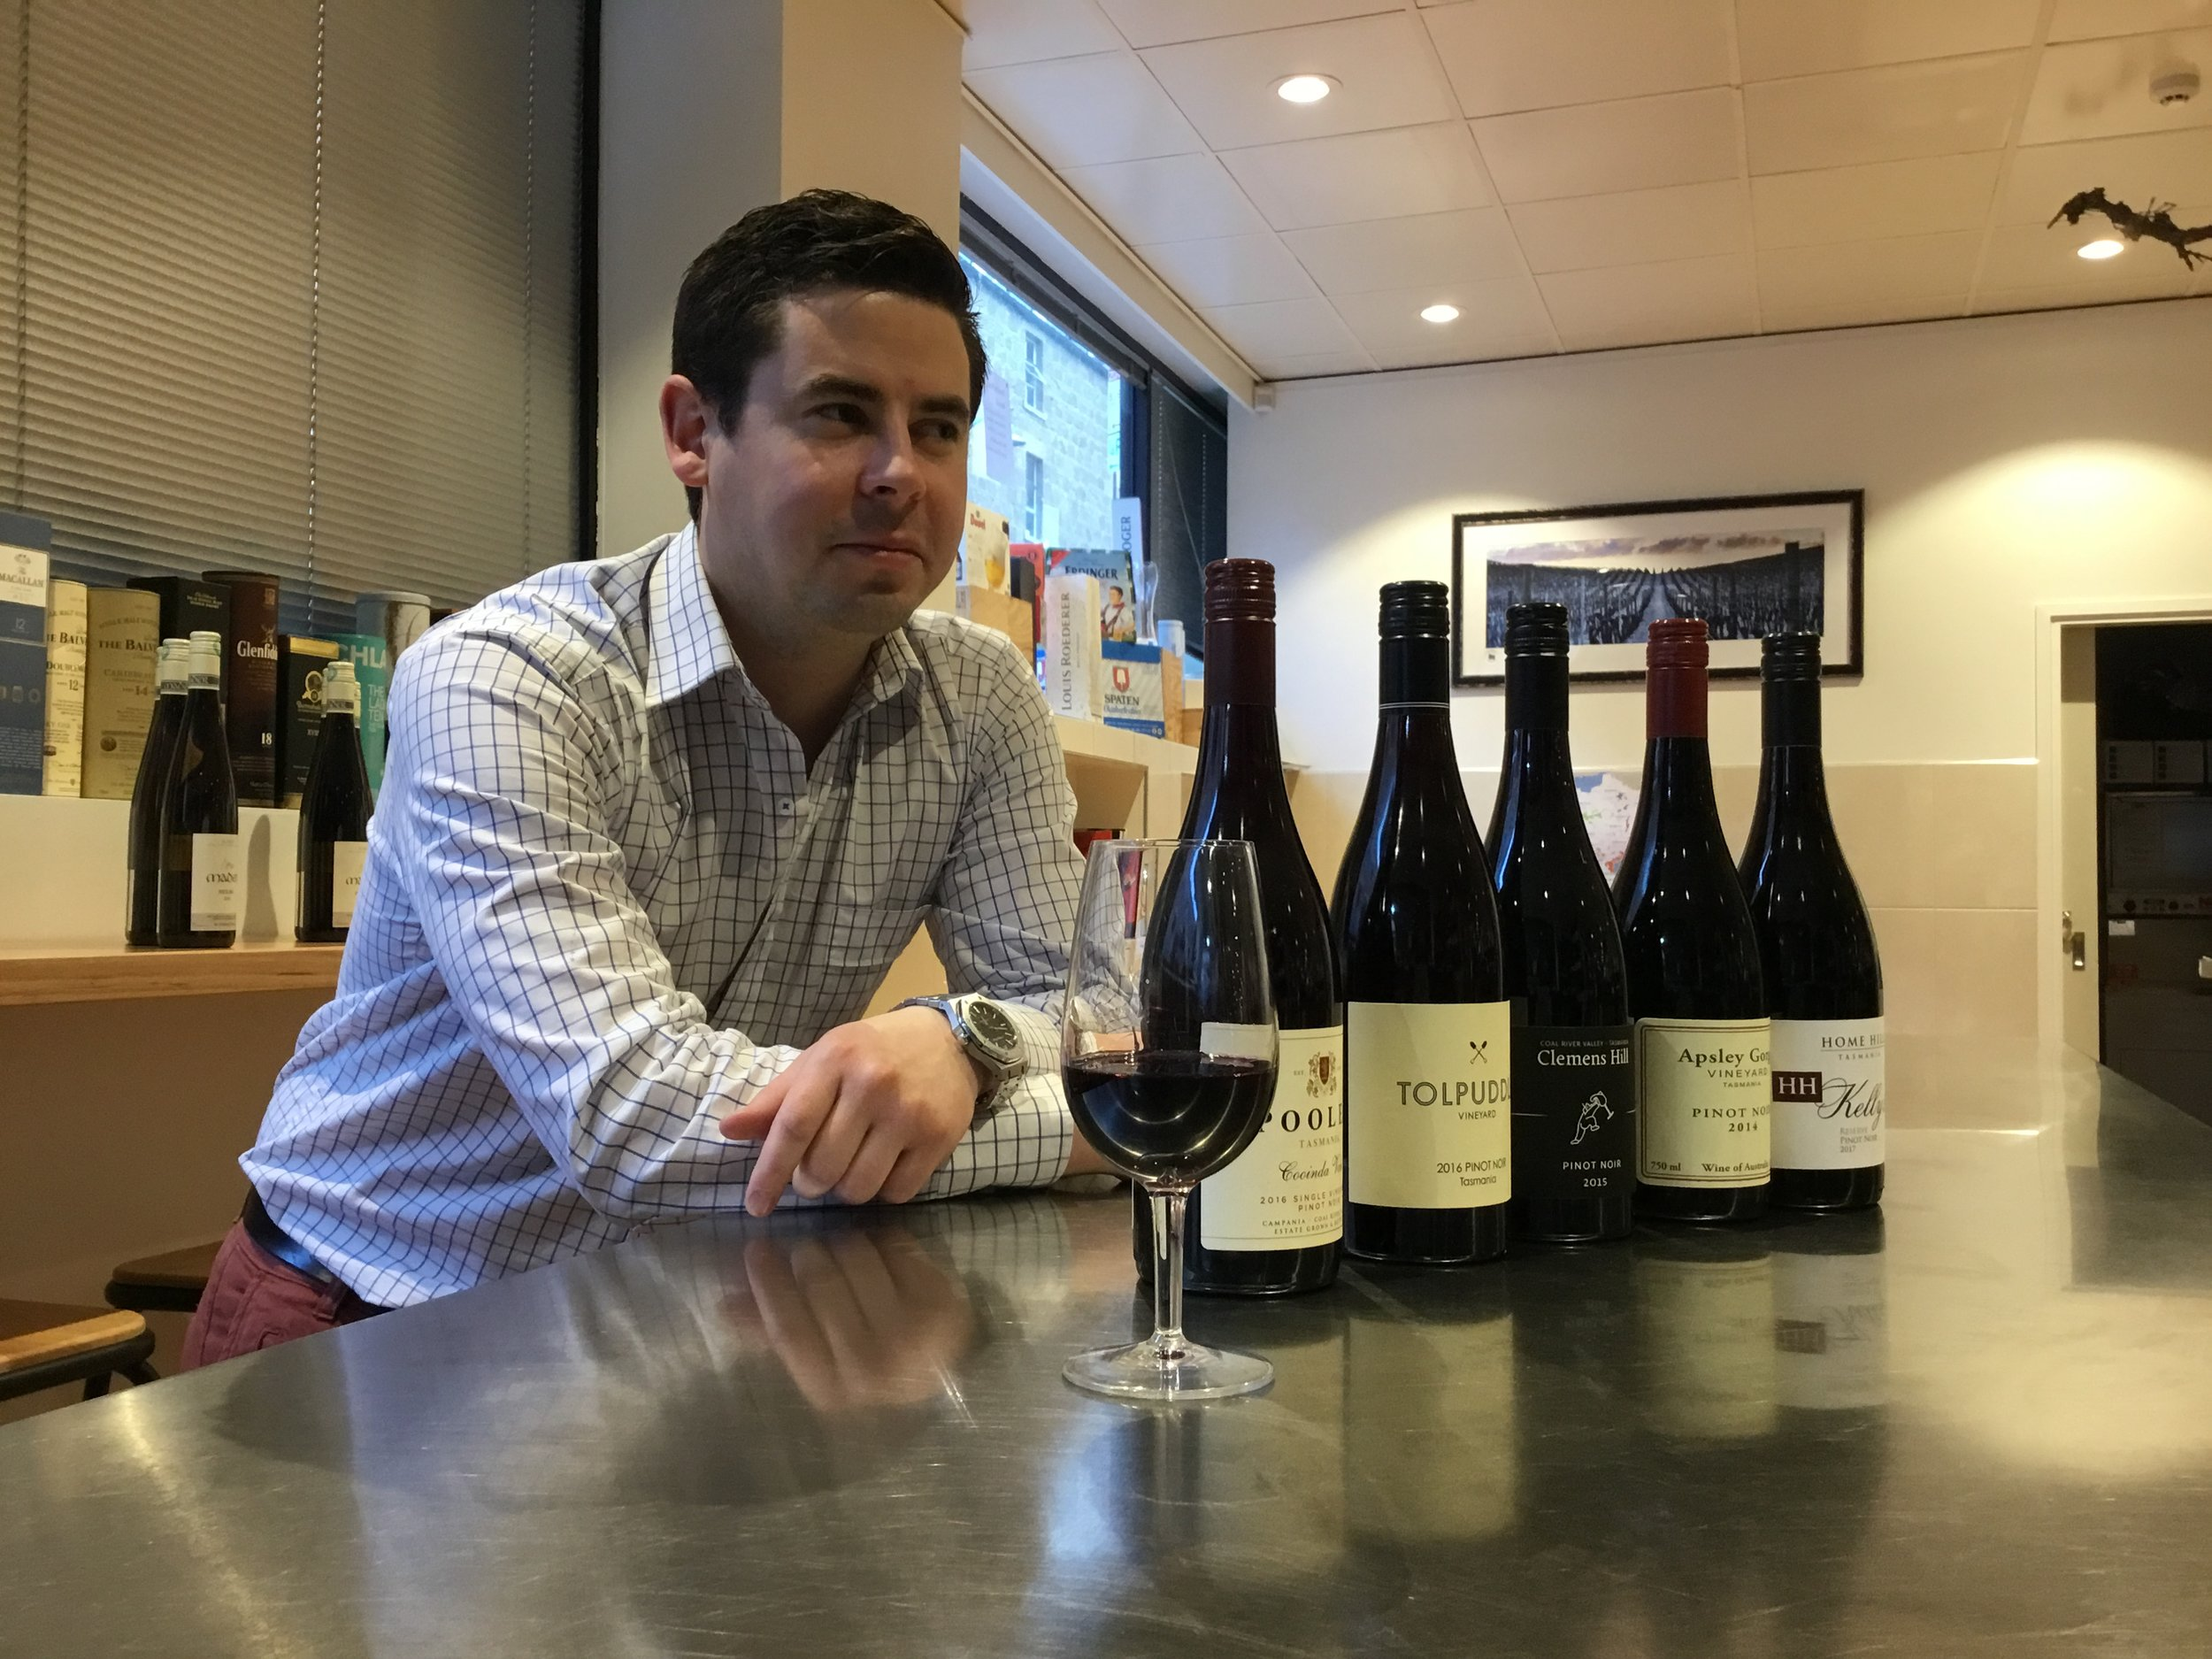 The Tasmanian Sommelier Challenge - Do you have what it takes? - Check full details